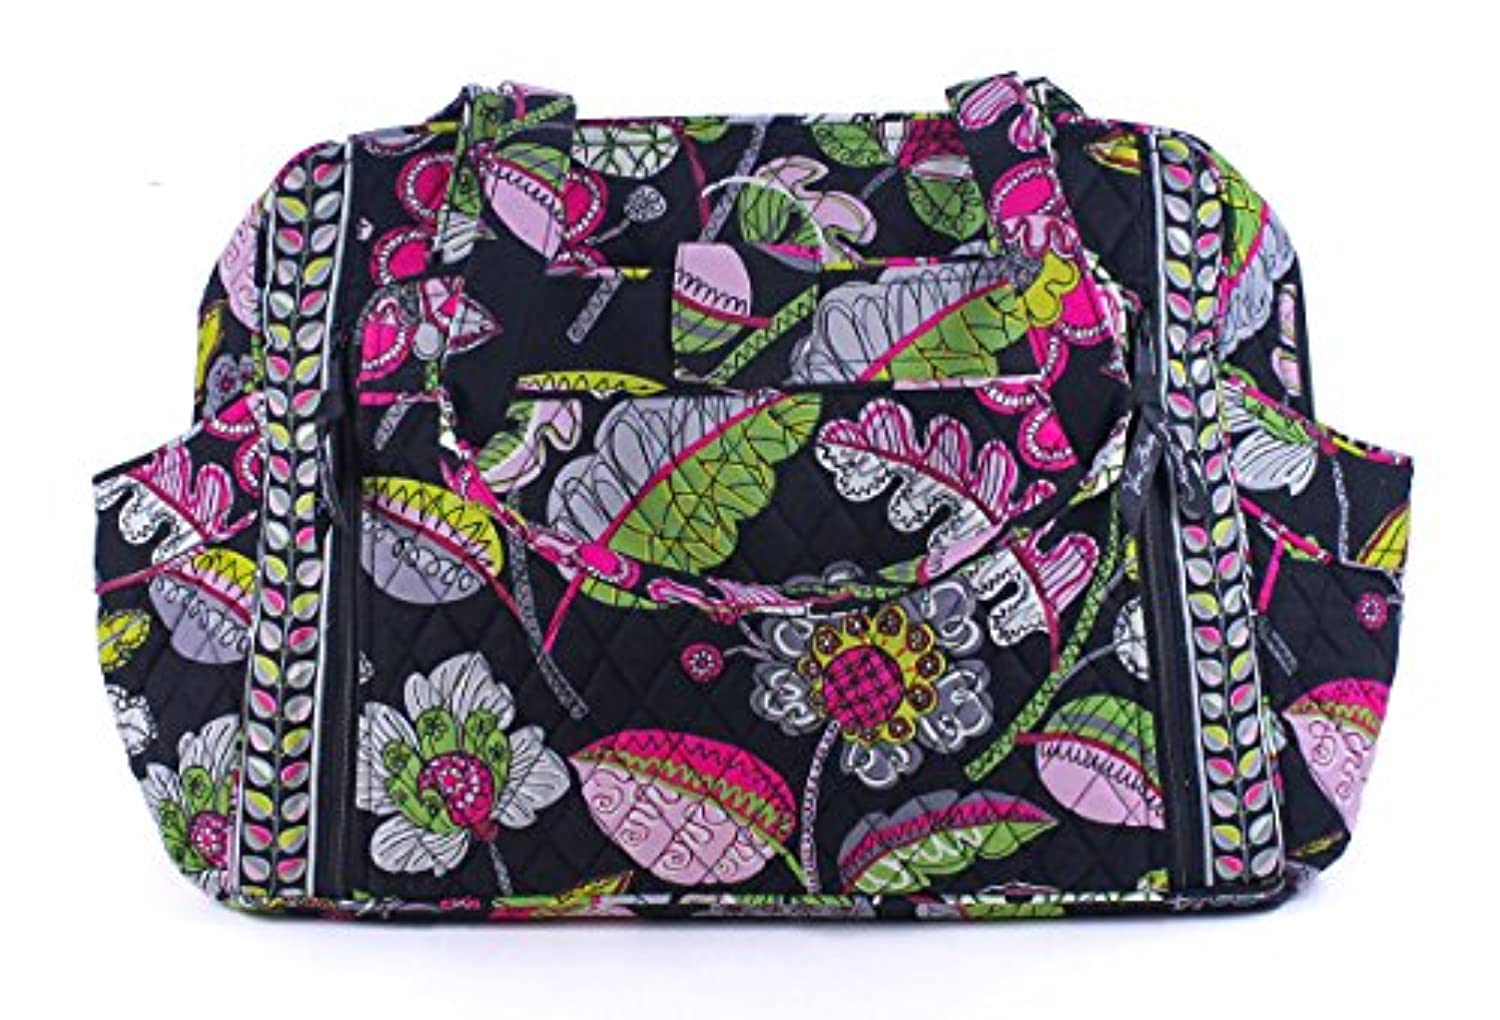 Vera Bradley Make a Change Baby Bag in Moon Blooms by Vera Bradley